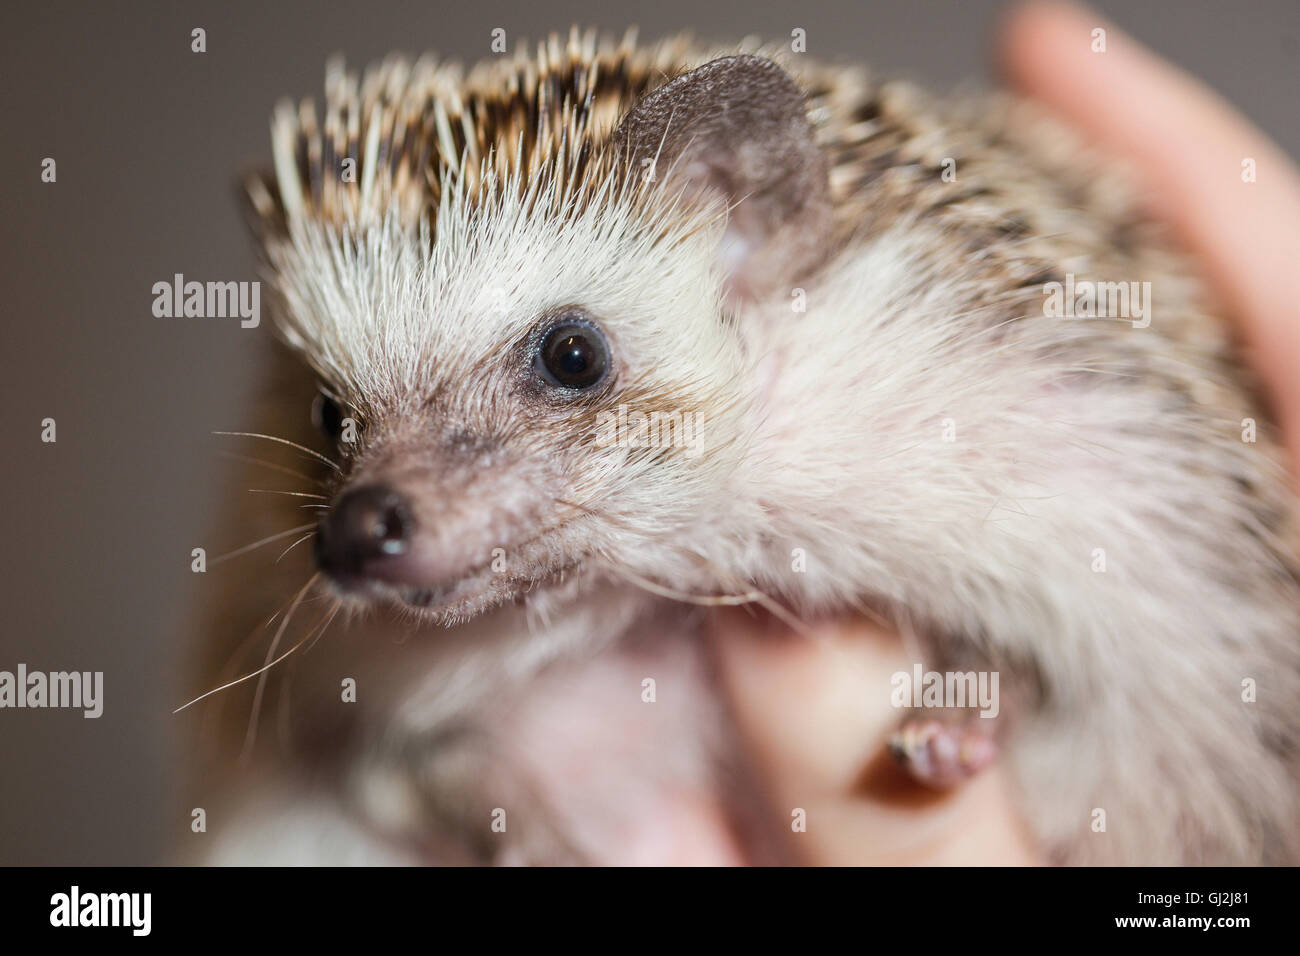 Close up of person holding hedgehog - Stock Image